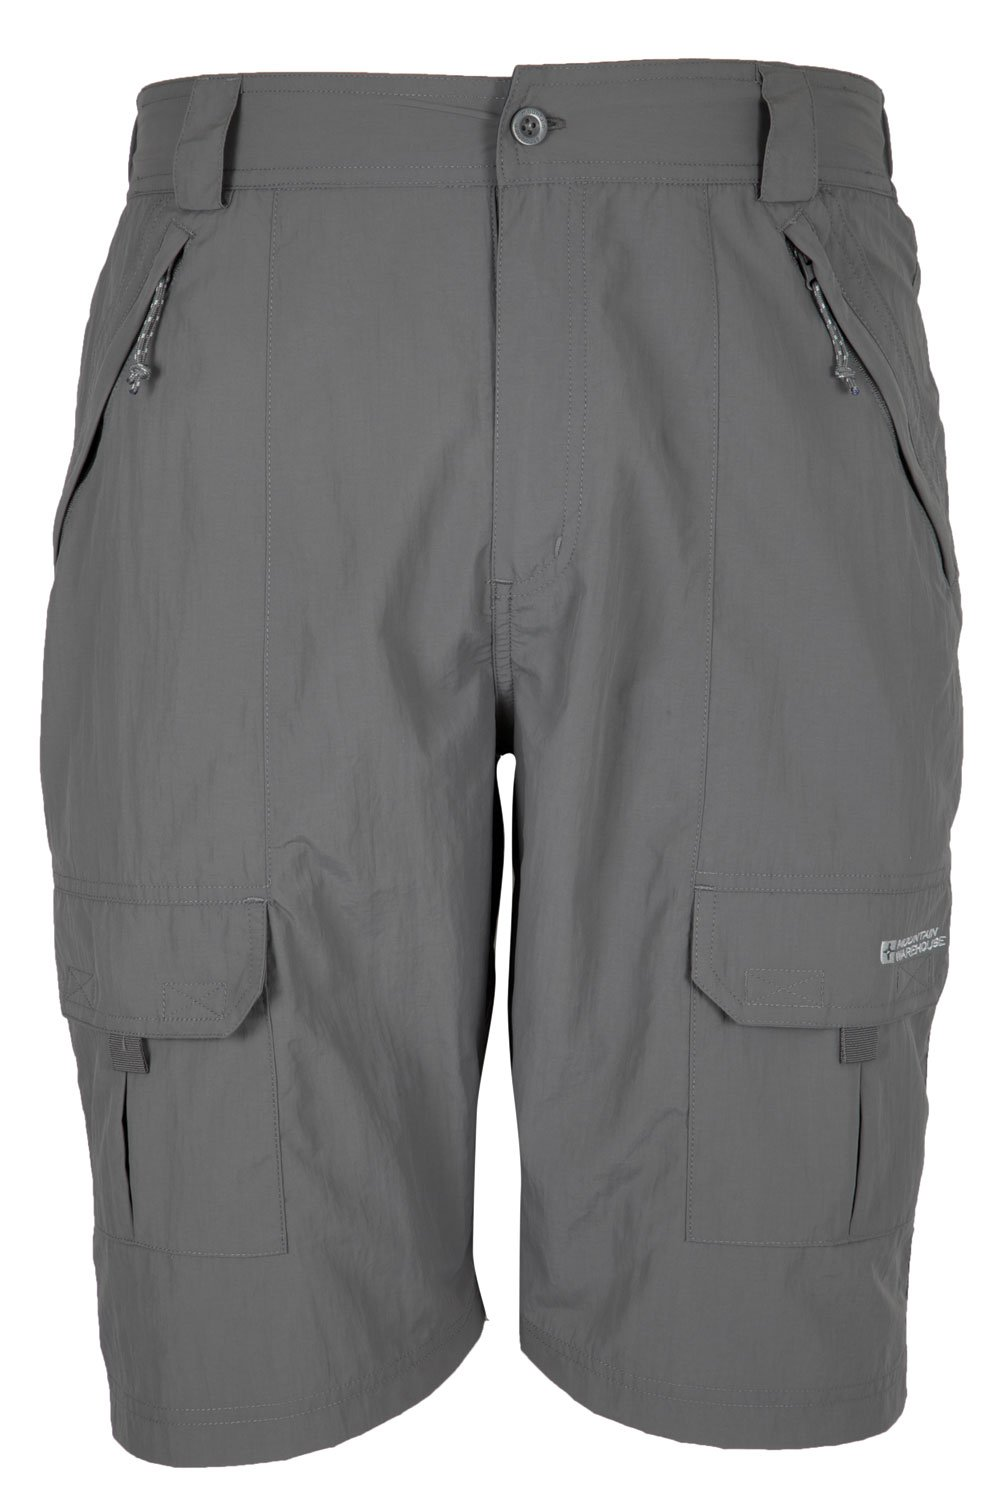 Mountain Warehouse Terrain Mens Lightweight Hiking Shorts